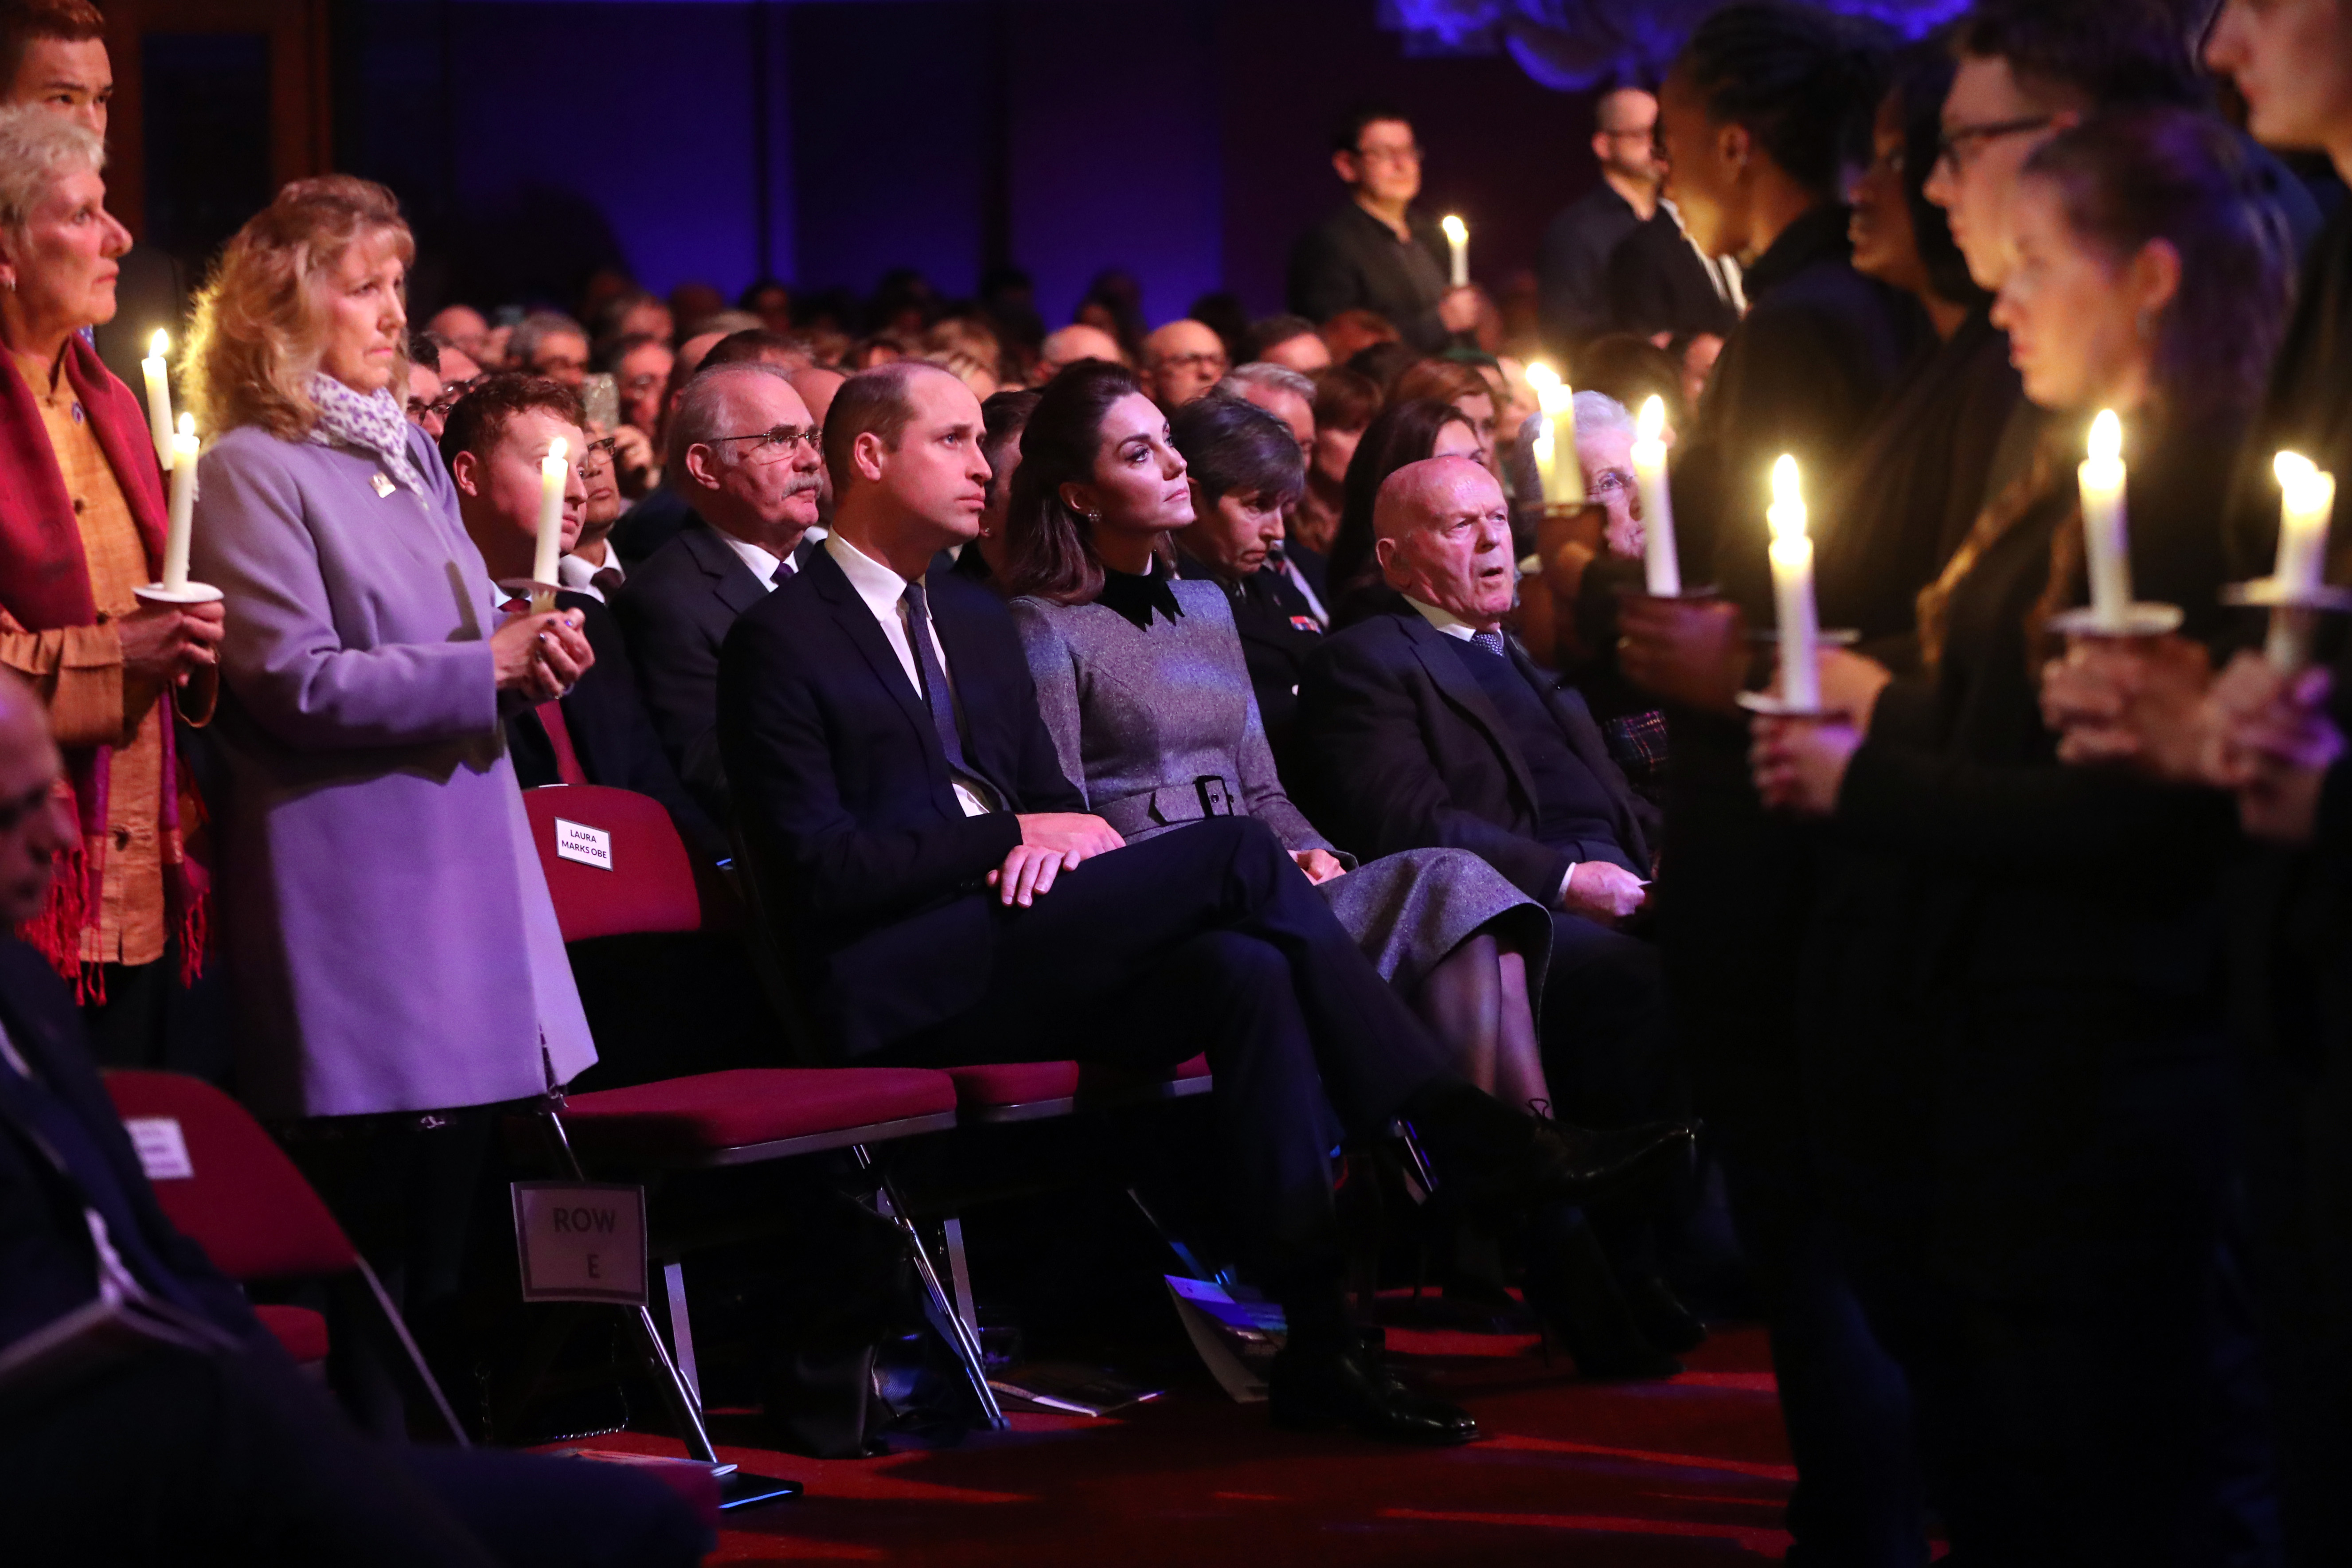 The Duke and Duchess of Cambridge attend a Holocaust Memorial Day Service in London